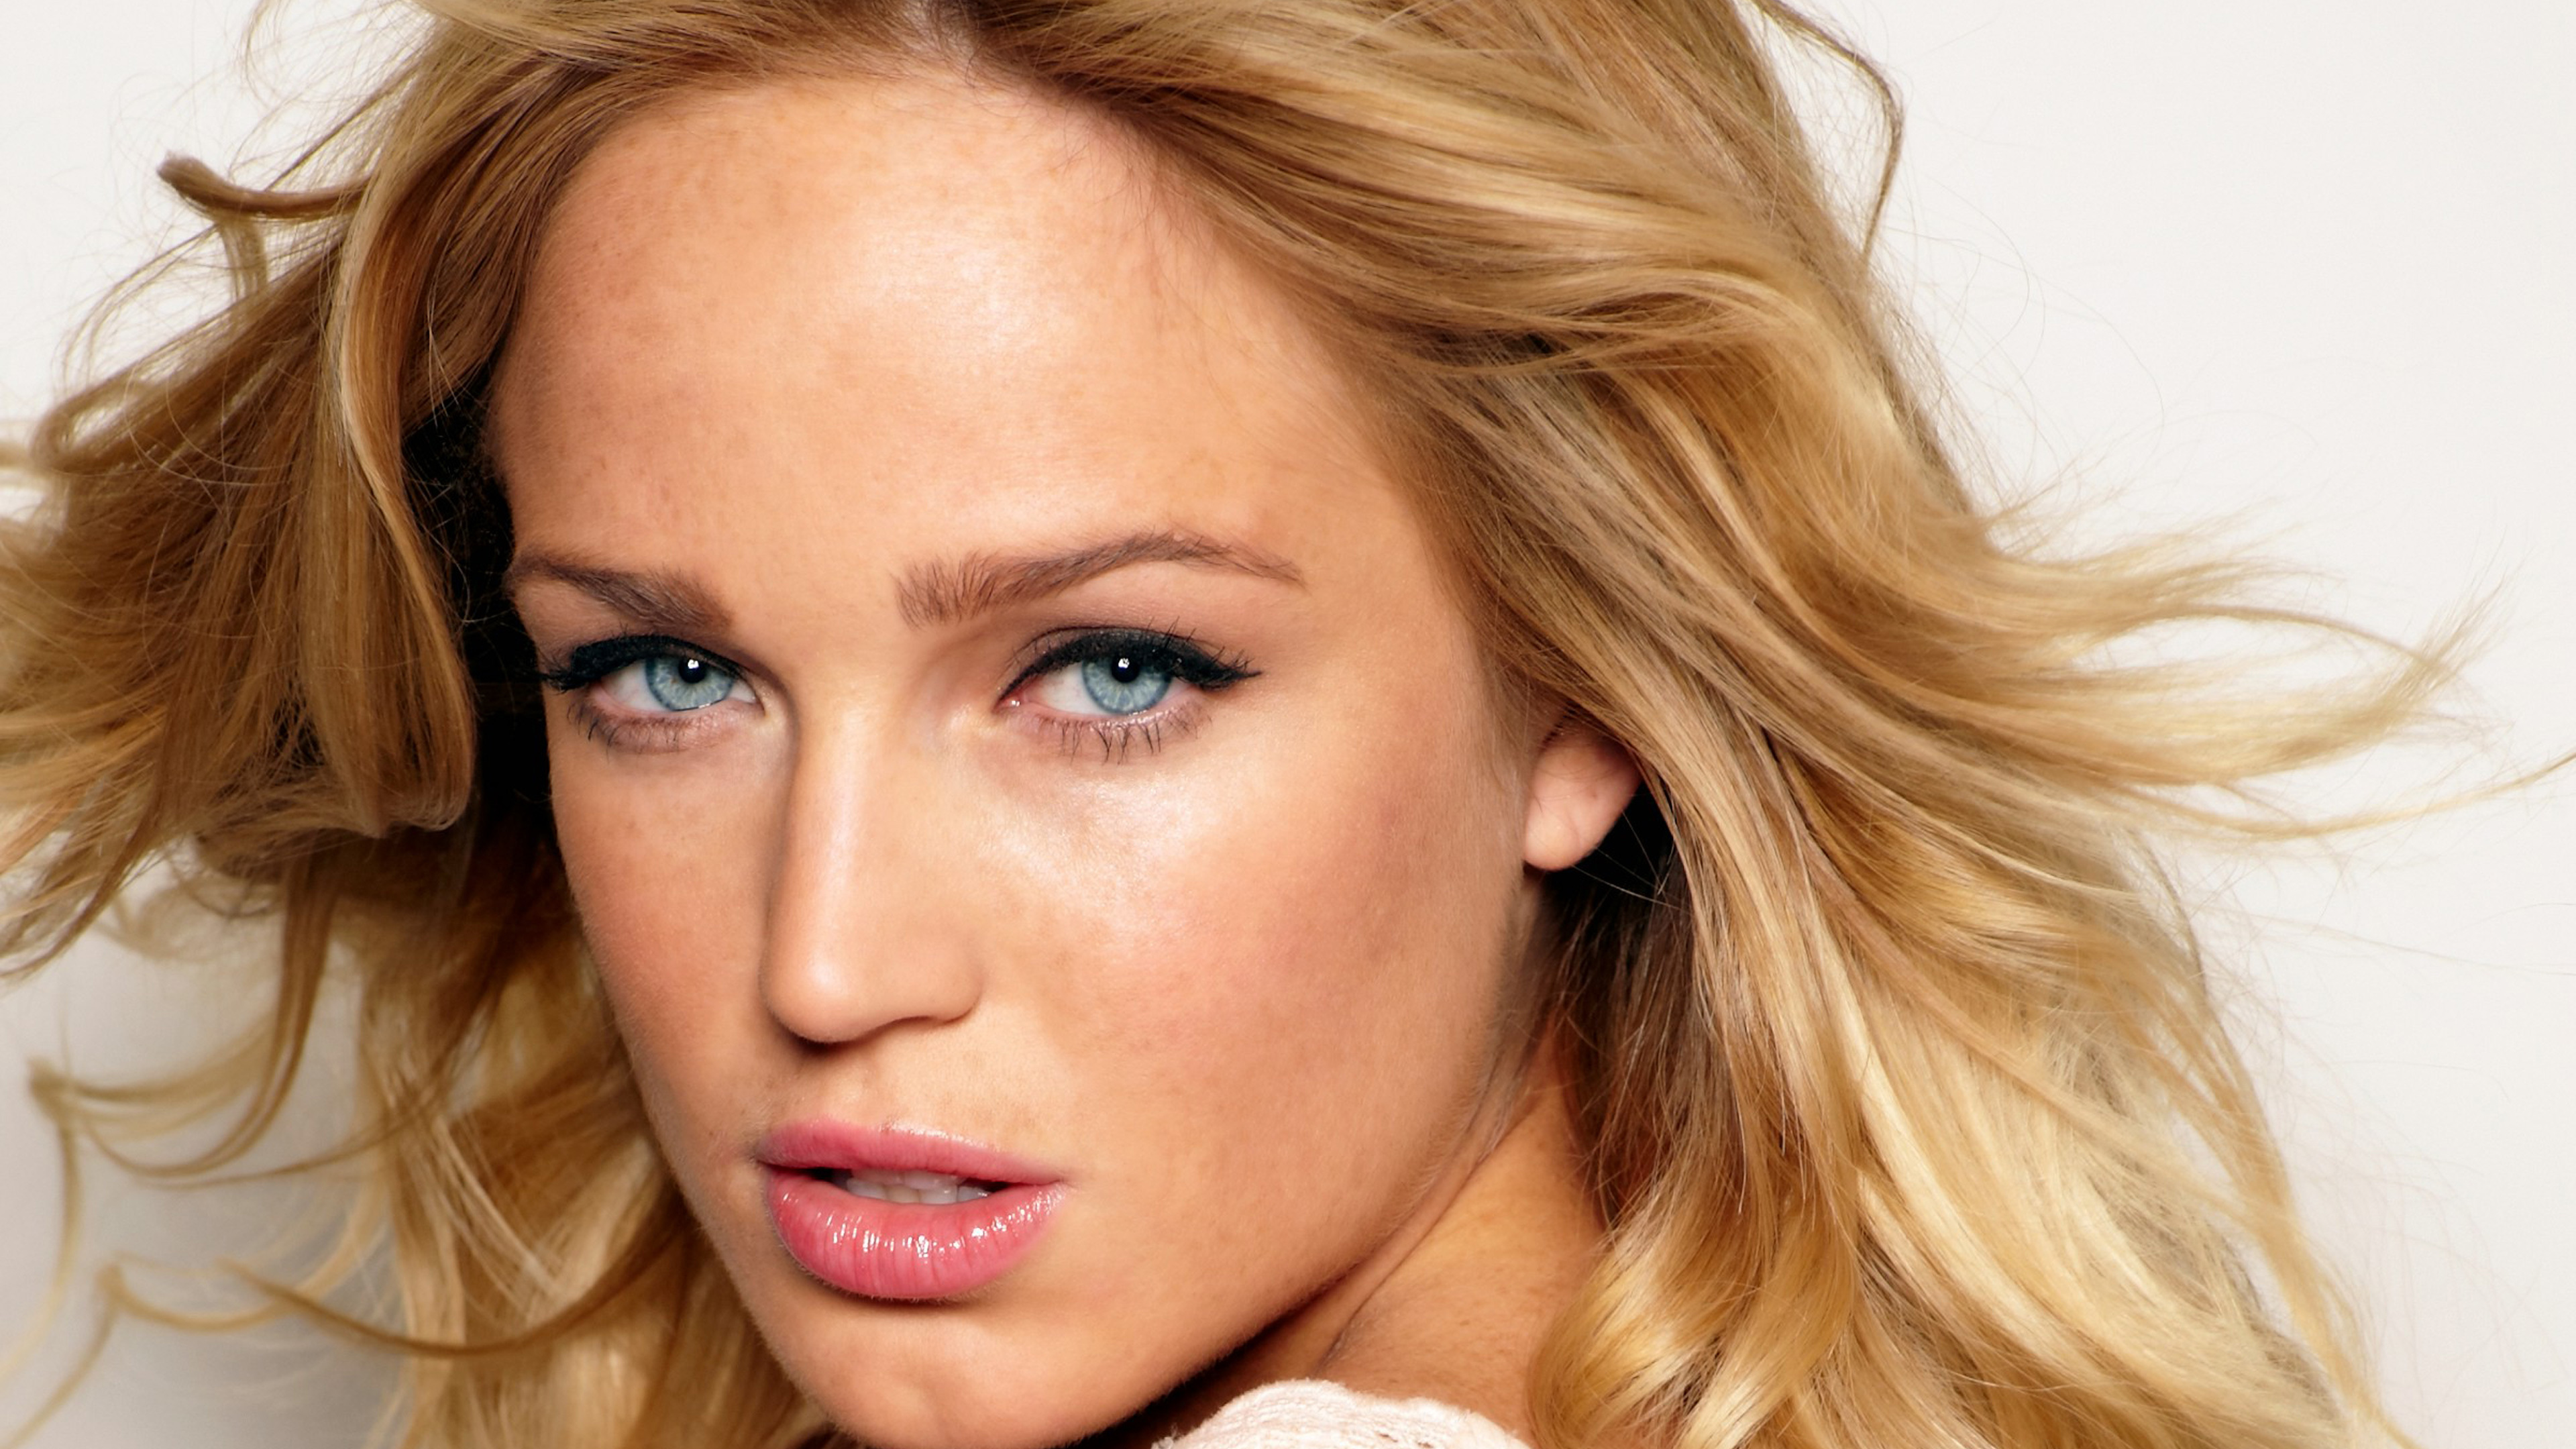 caity lotz 2018 1536860486 - Caity Lotz 2018 - hd-wallpapers, girls wallpapers, celebrities wallpapers, caity lotz wallpapers, 4k-wallpapers